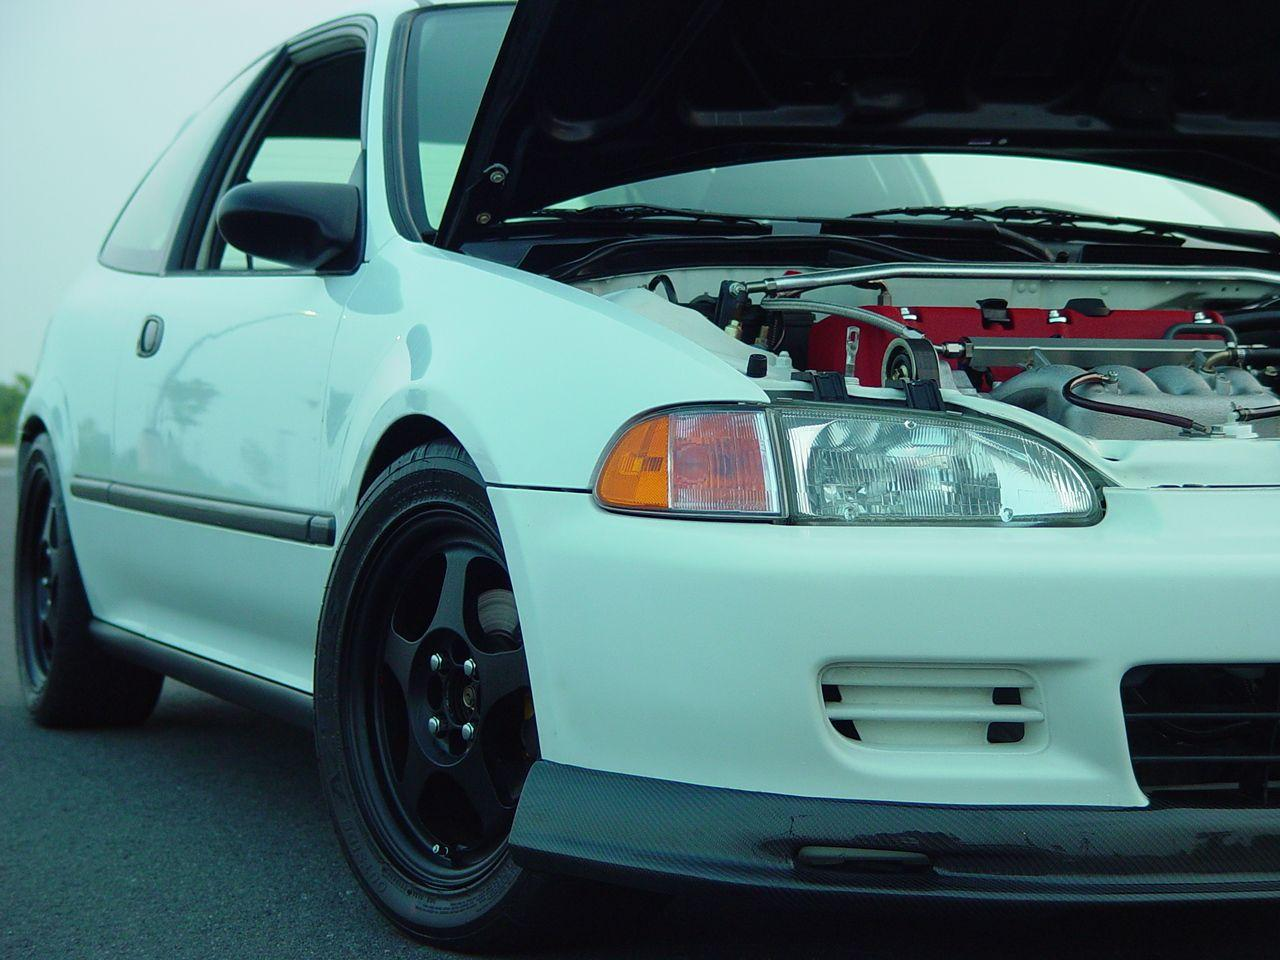 Wallpaper]Honda Civic White EG Hatchback